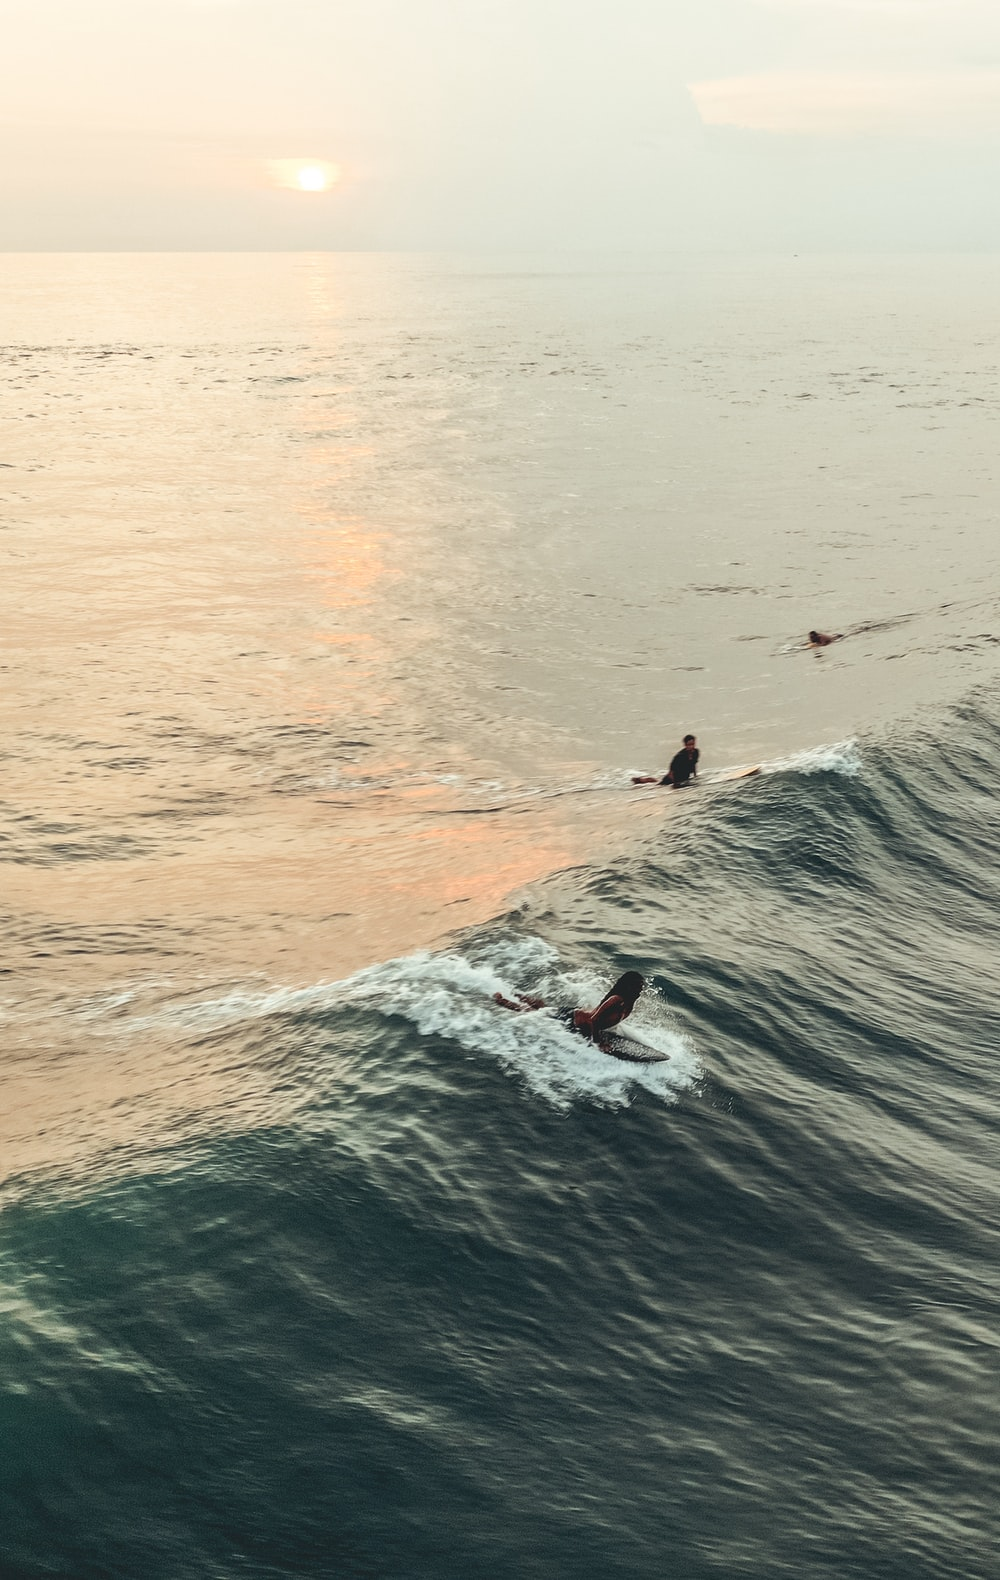 person surfing on body of water during golden hour